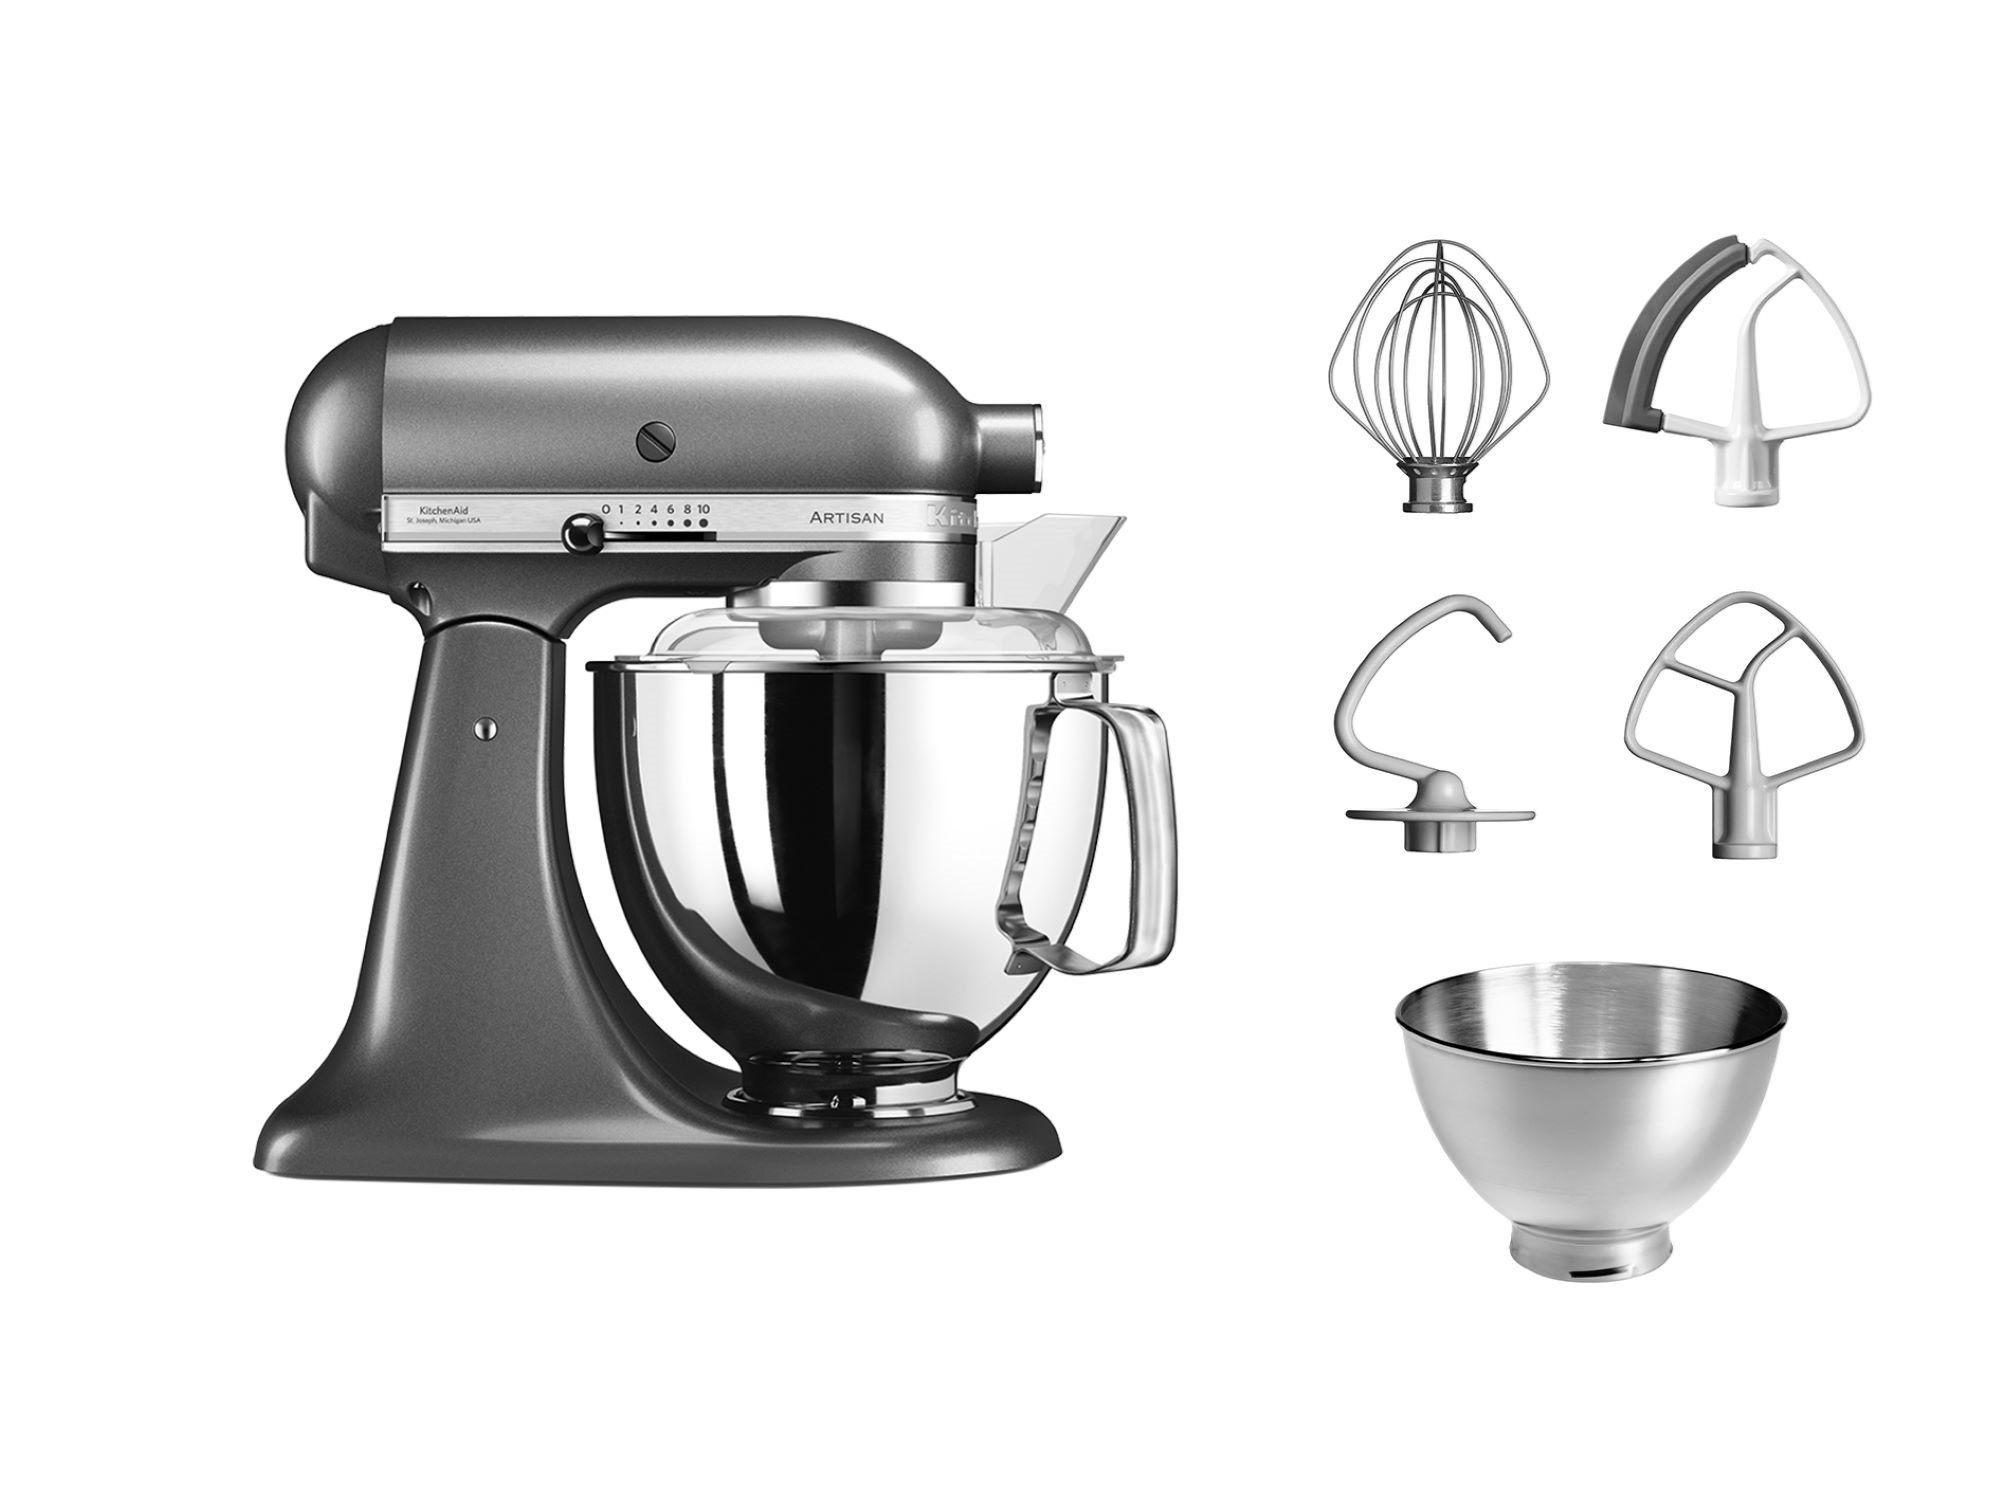 Mixer Bol Artisan Elegance Ksm Psems Medallion Silver Kitchenaid